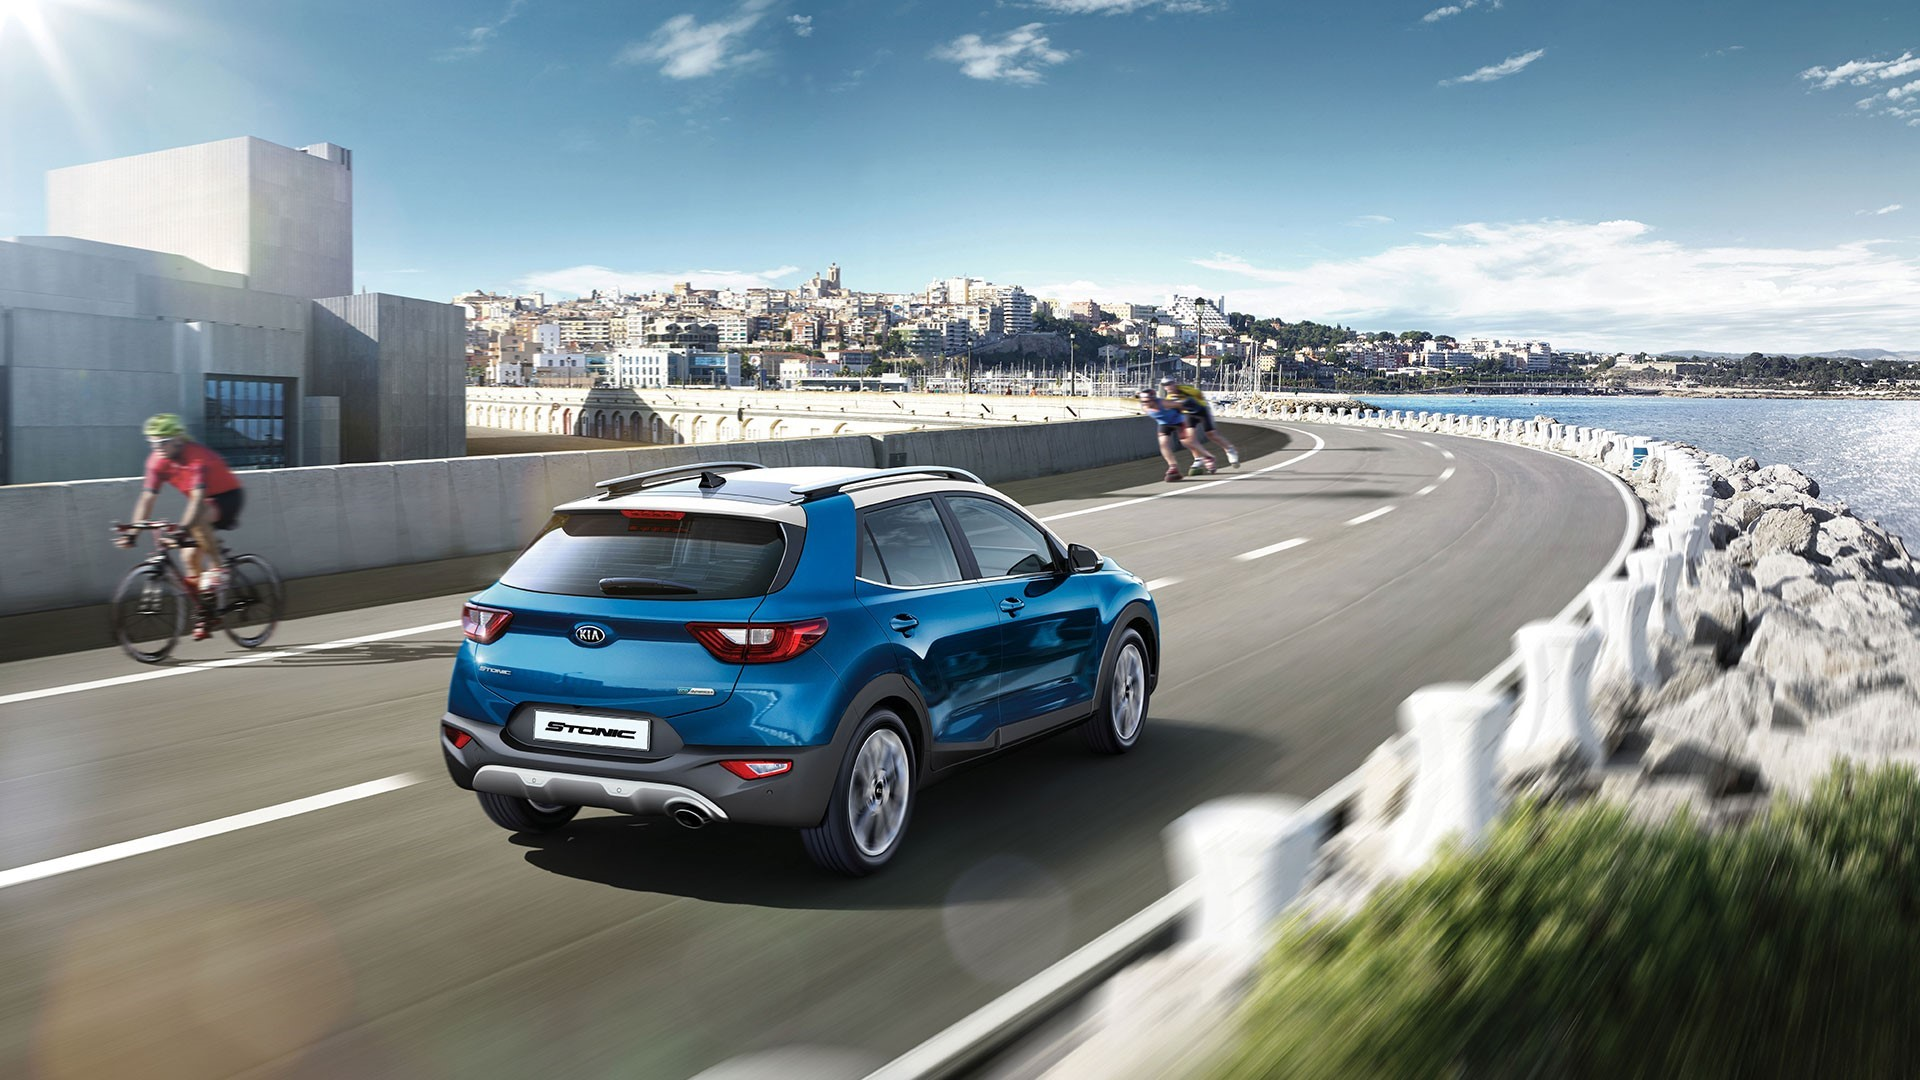 Mild-hybrid power, connectivity and new driver assistance tech for upgraded Kia Stonic - Image 5